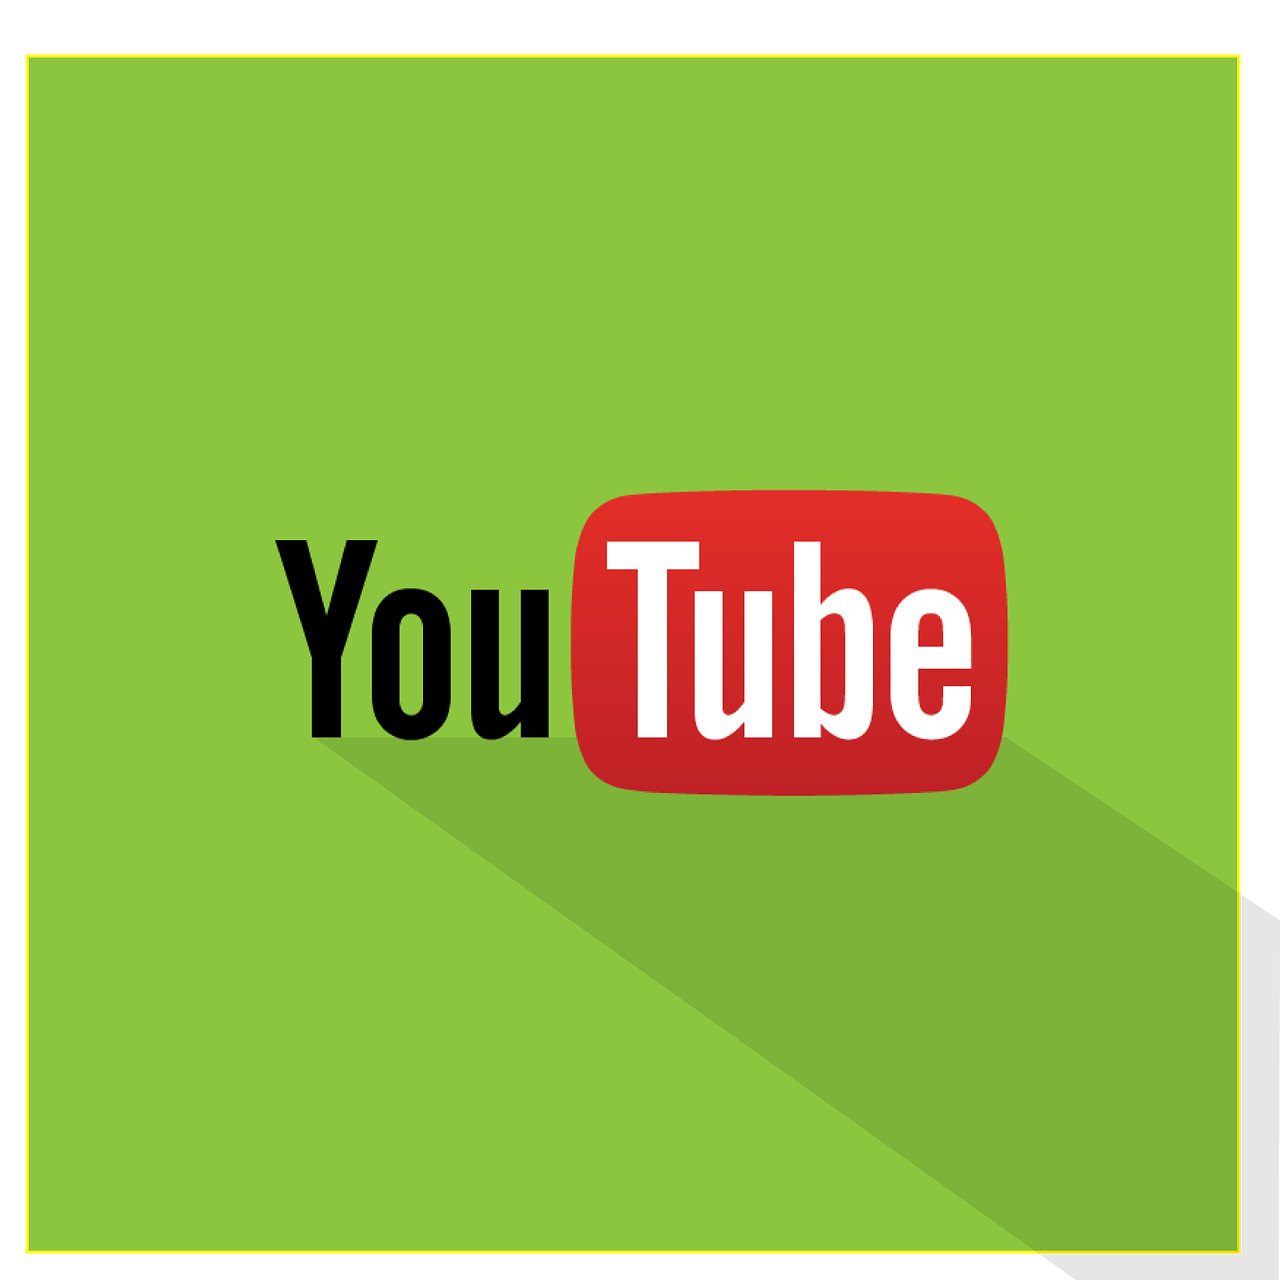 How to attract people to improve YouTube views?